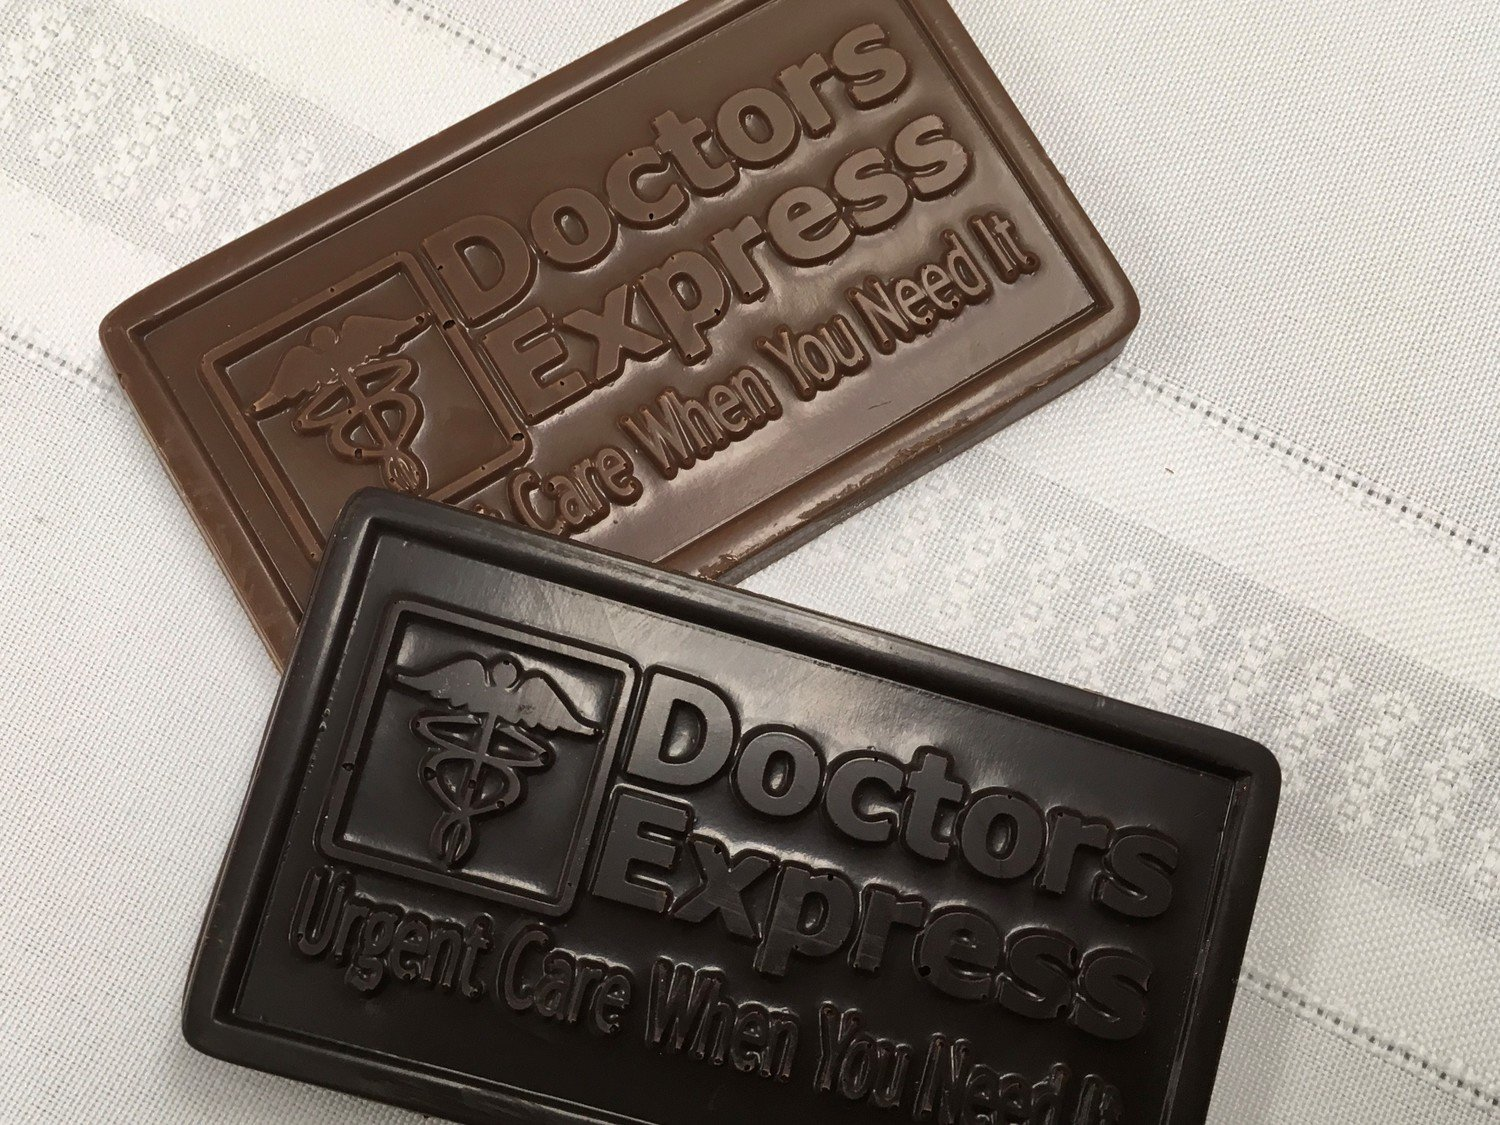 Chocolate Business Card. Upload you business logo in a JPG for Proof. Made on premises. Price is for mold and 50 Chocolate Bars (price may vary depending on logo) Addt'l bars $1.99 per bar.